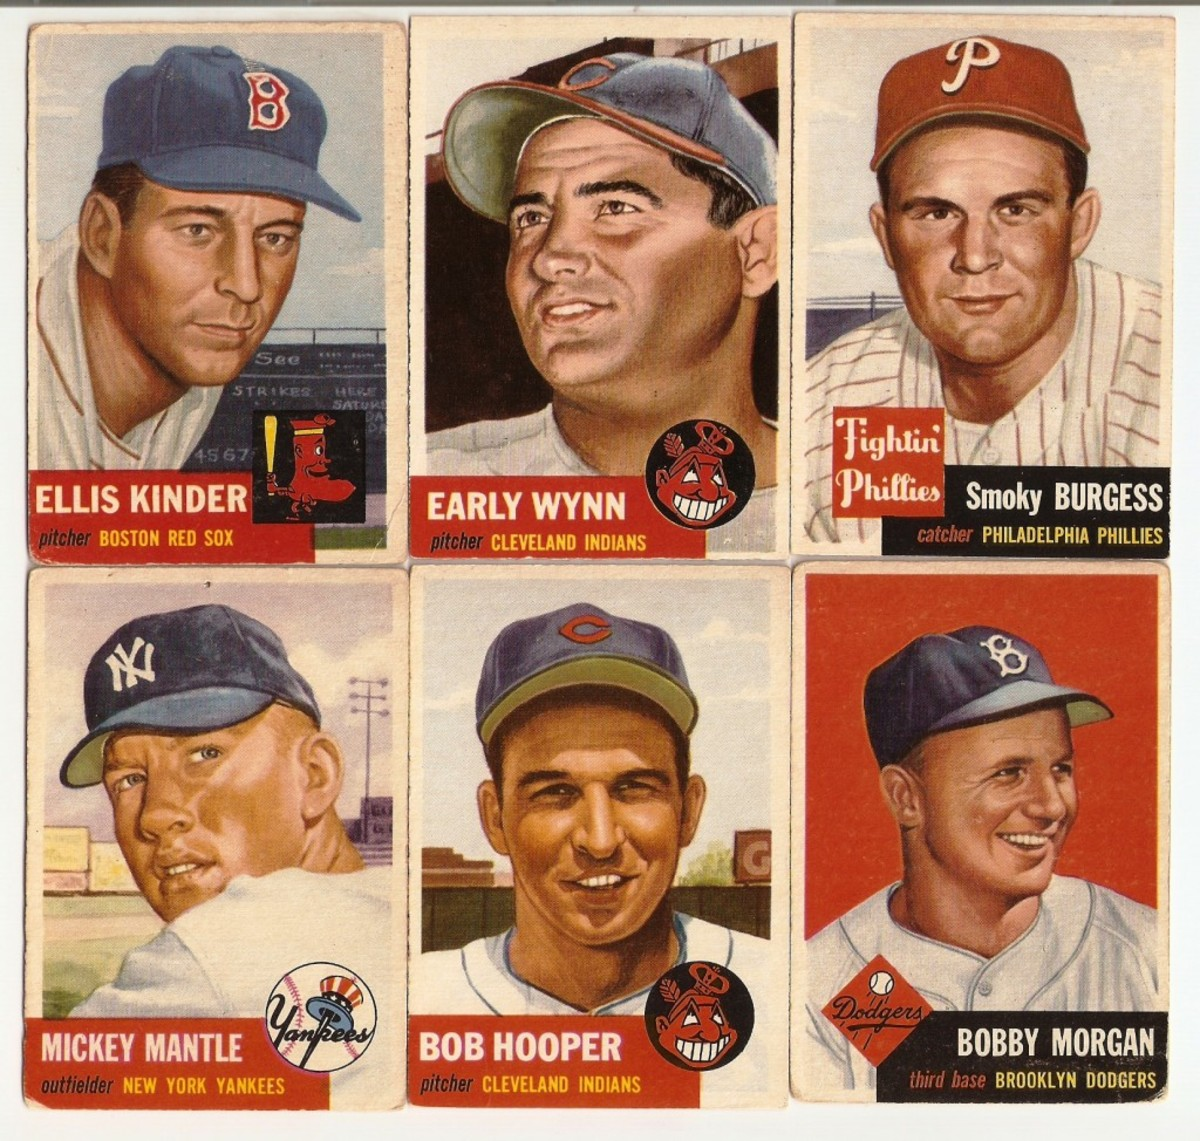 Was it Mantle at #82 which caused Topps to trade out three like-aligned cards? Kinder, Wynn and Burgess were replaced by Mantle, Hooper and Morgan. Perhaps Topps wanted us to look for some missing numbers and buy more cards to find them?